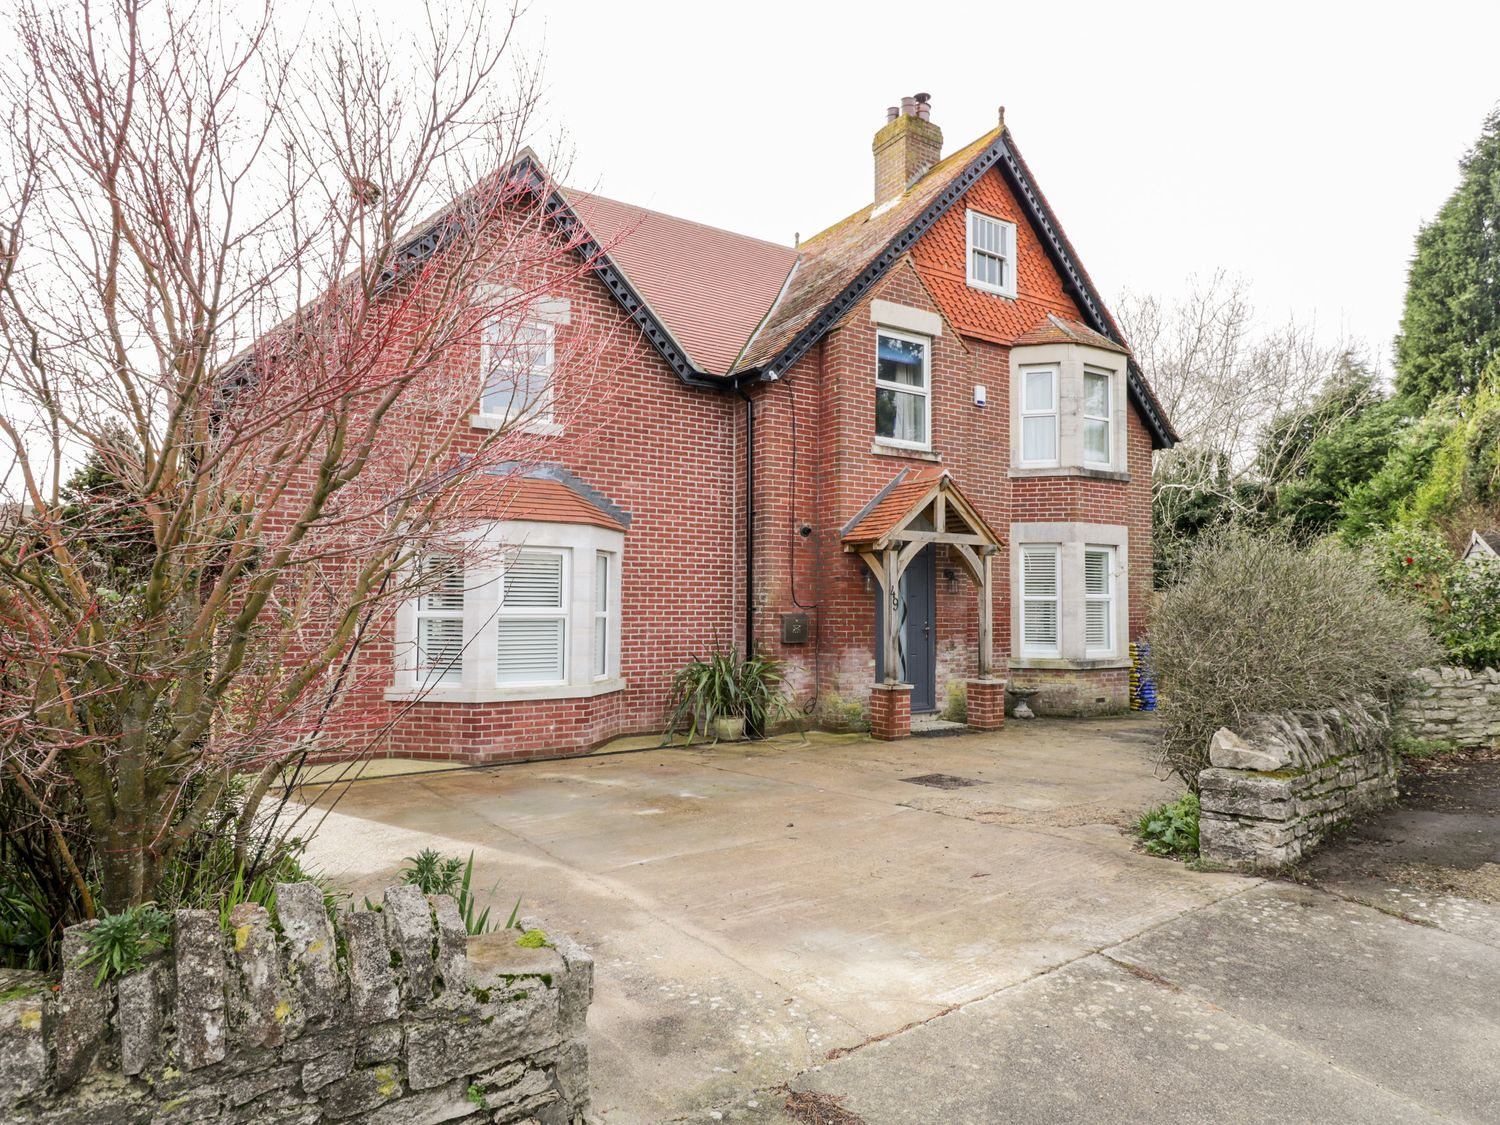 49 Ulwell Road - Dorset - 1039862 - photo 1